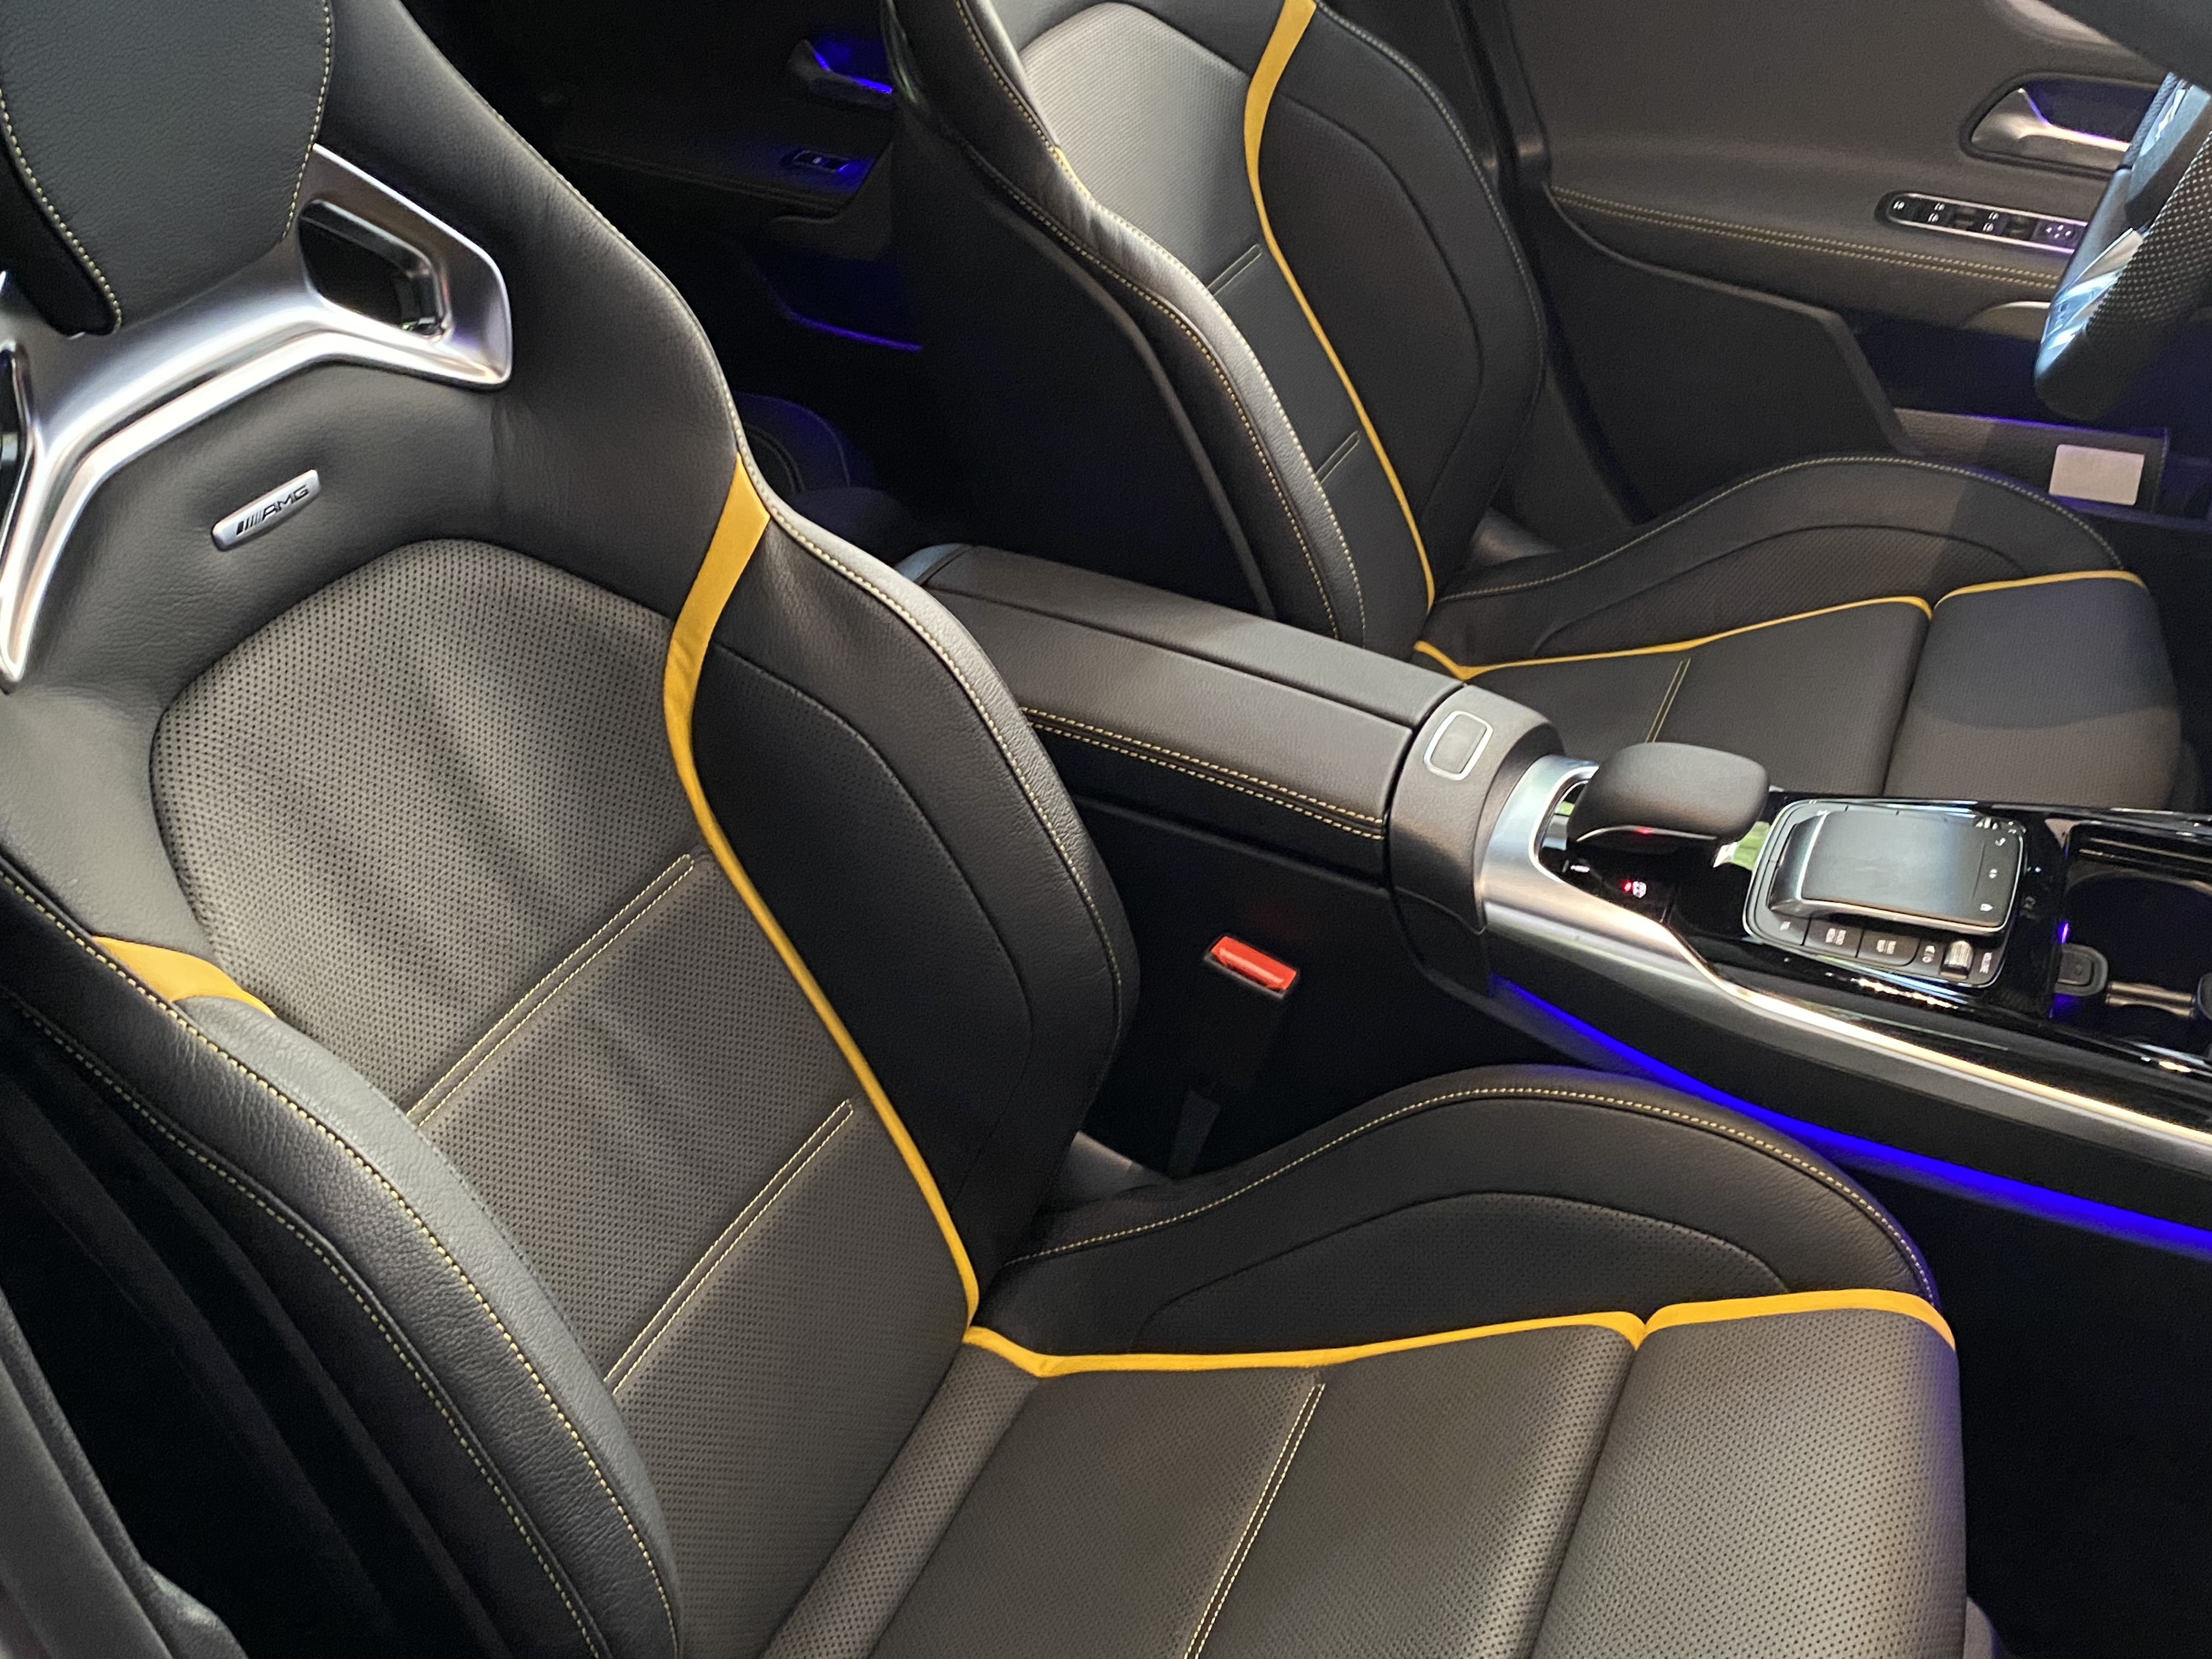 a45s_interior_front04.jpg